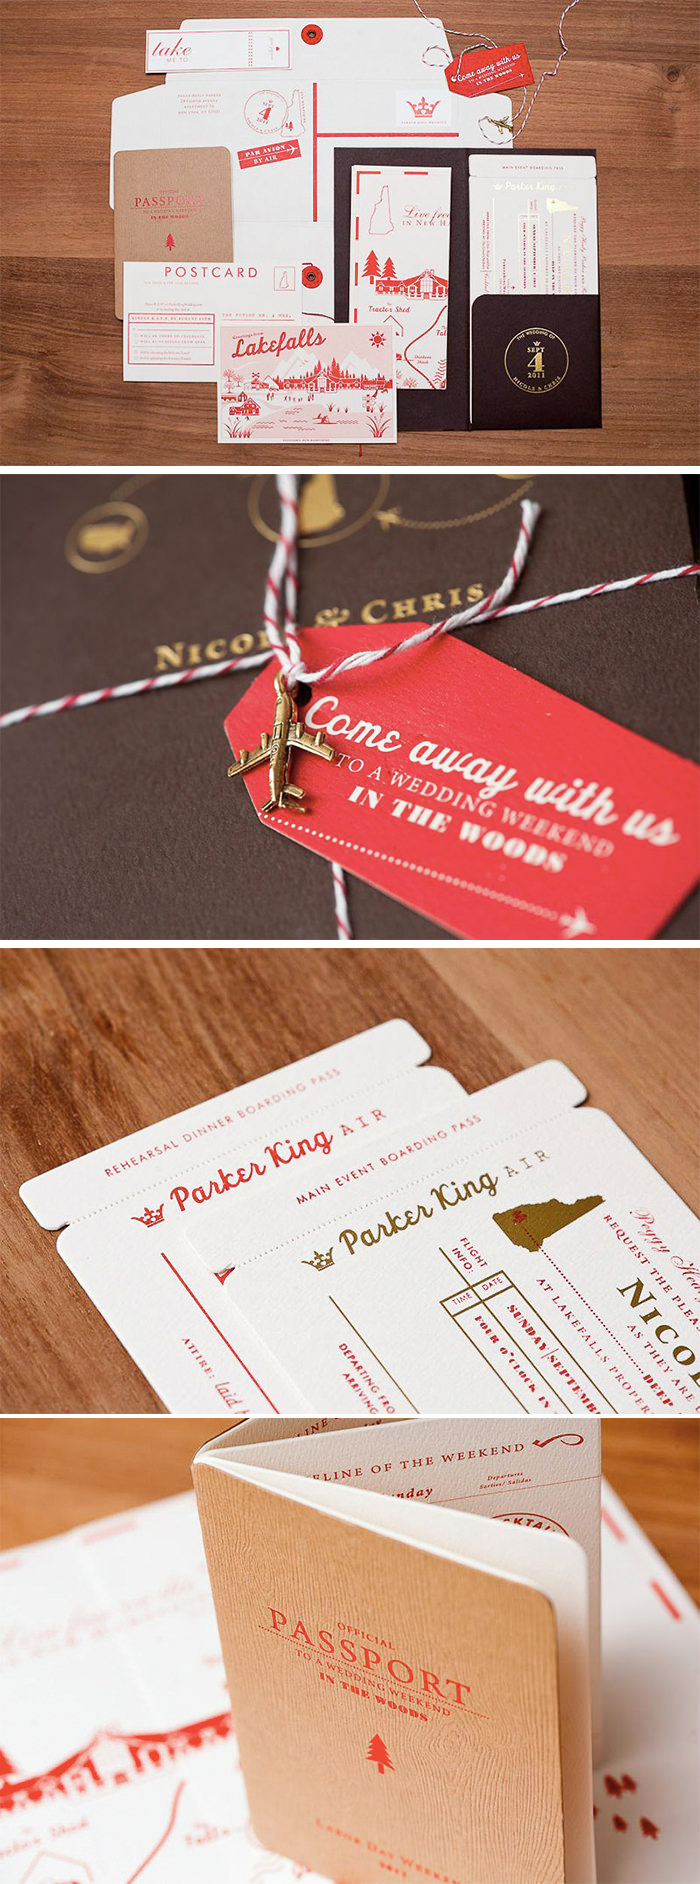 20 Event Invitation Designs to Impress Your Guests